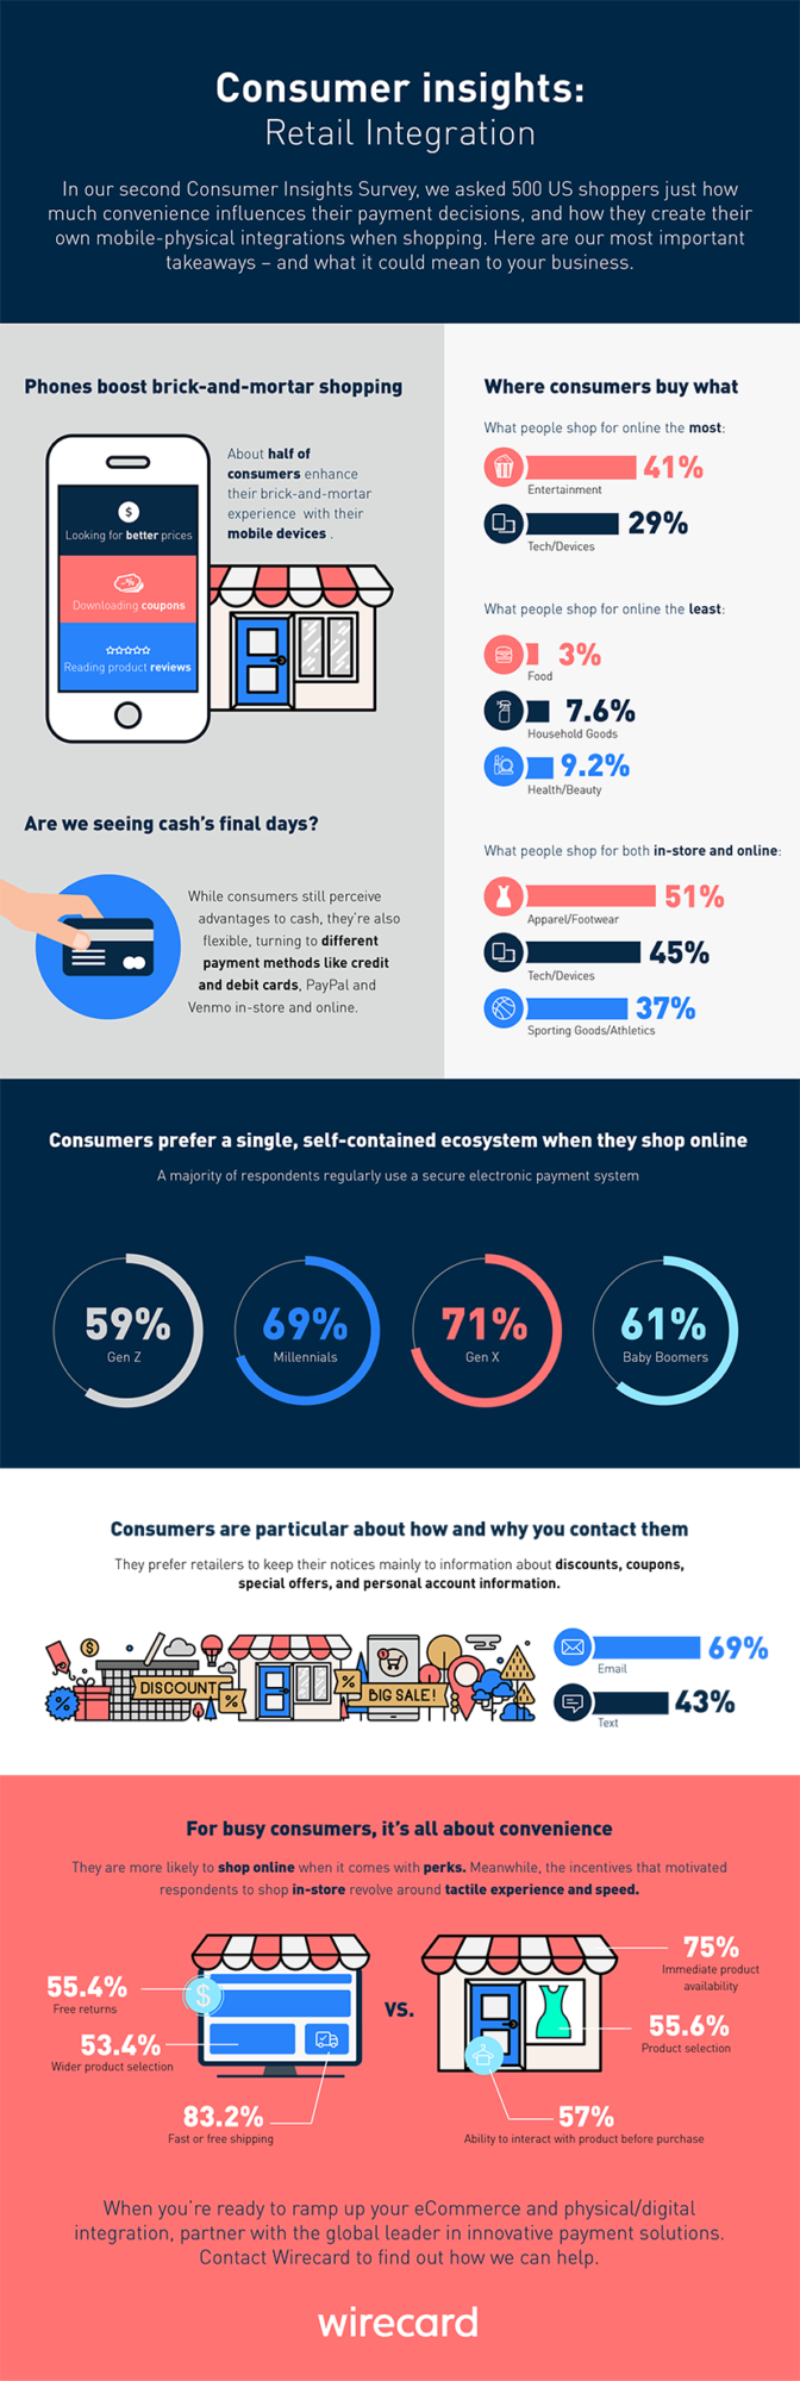 Consumer insights survey